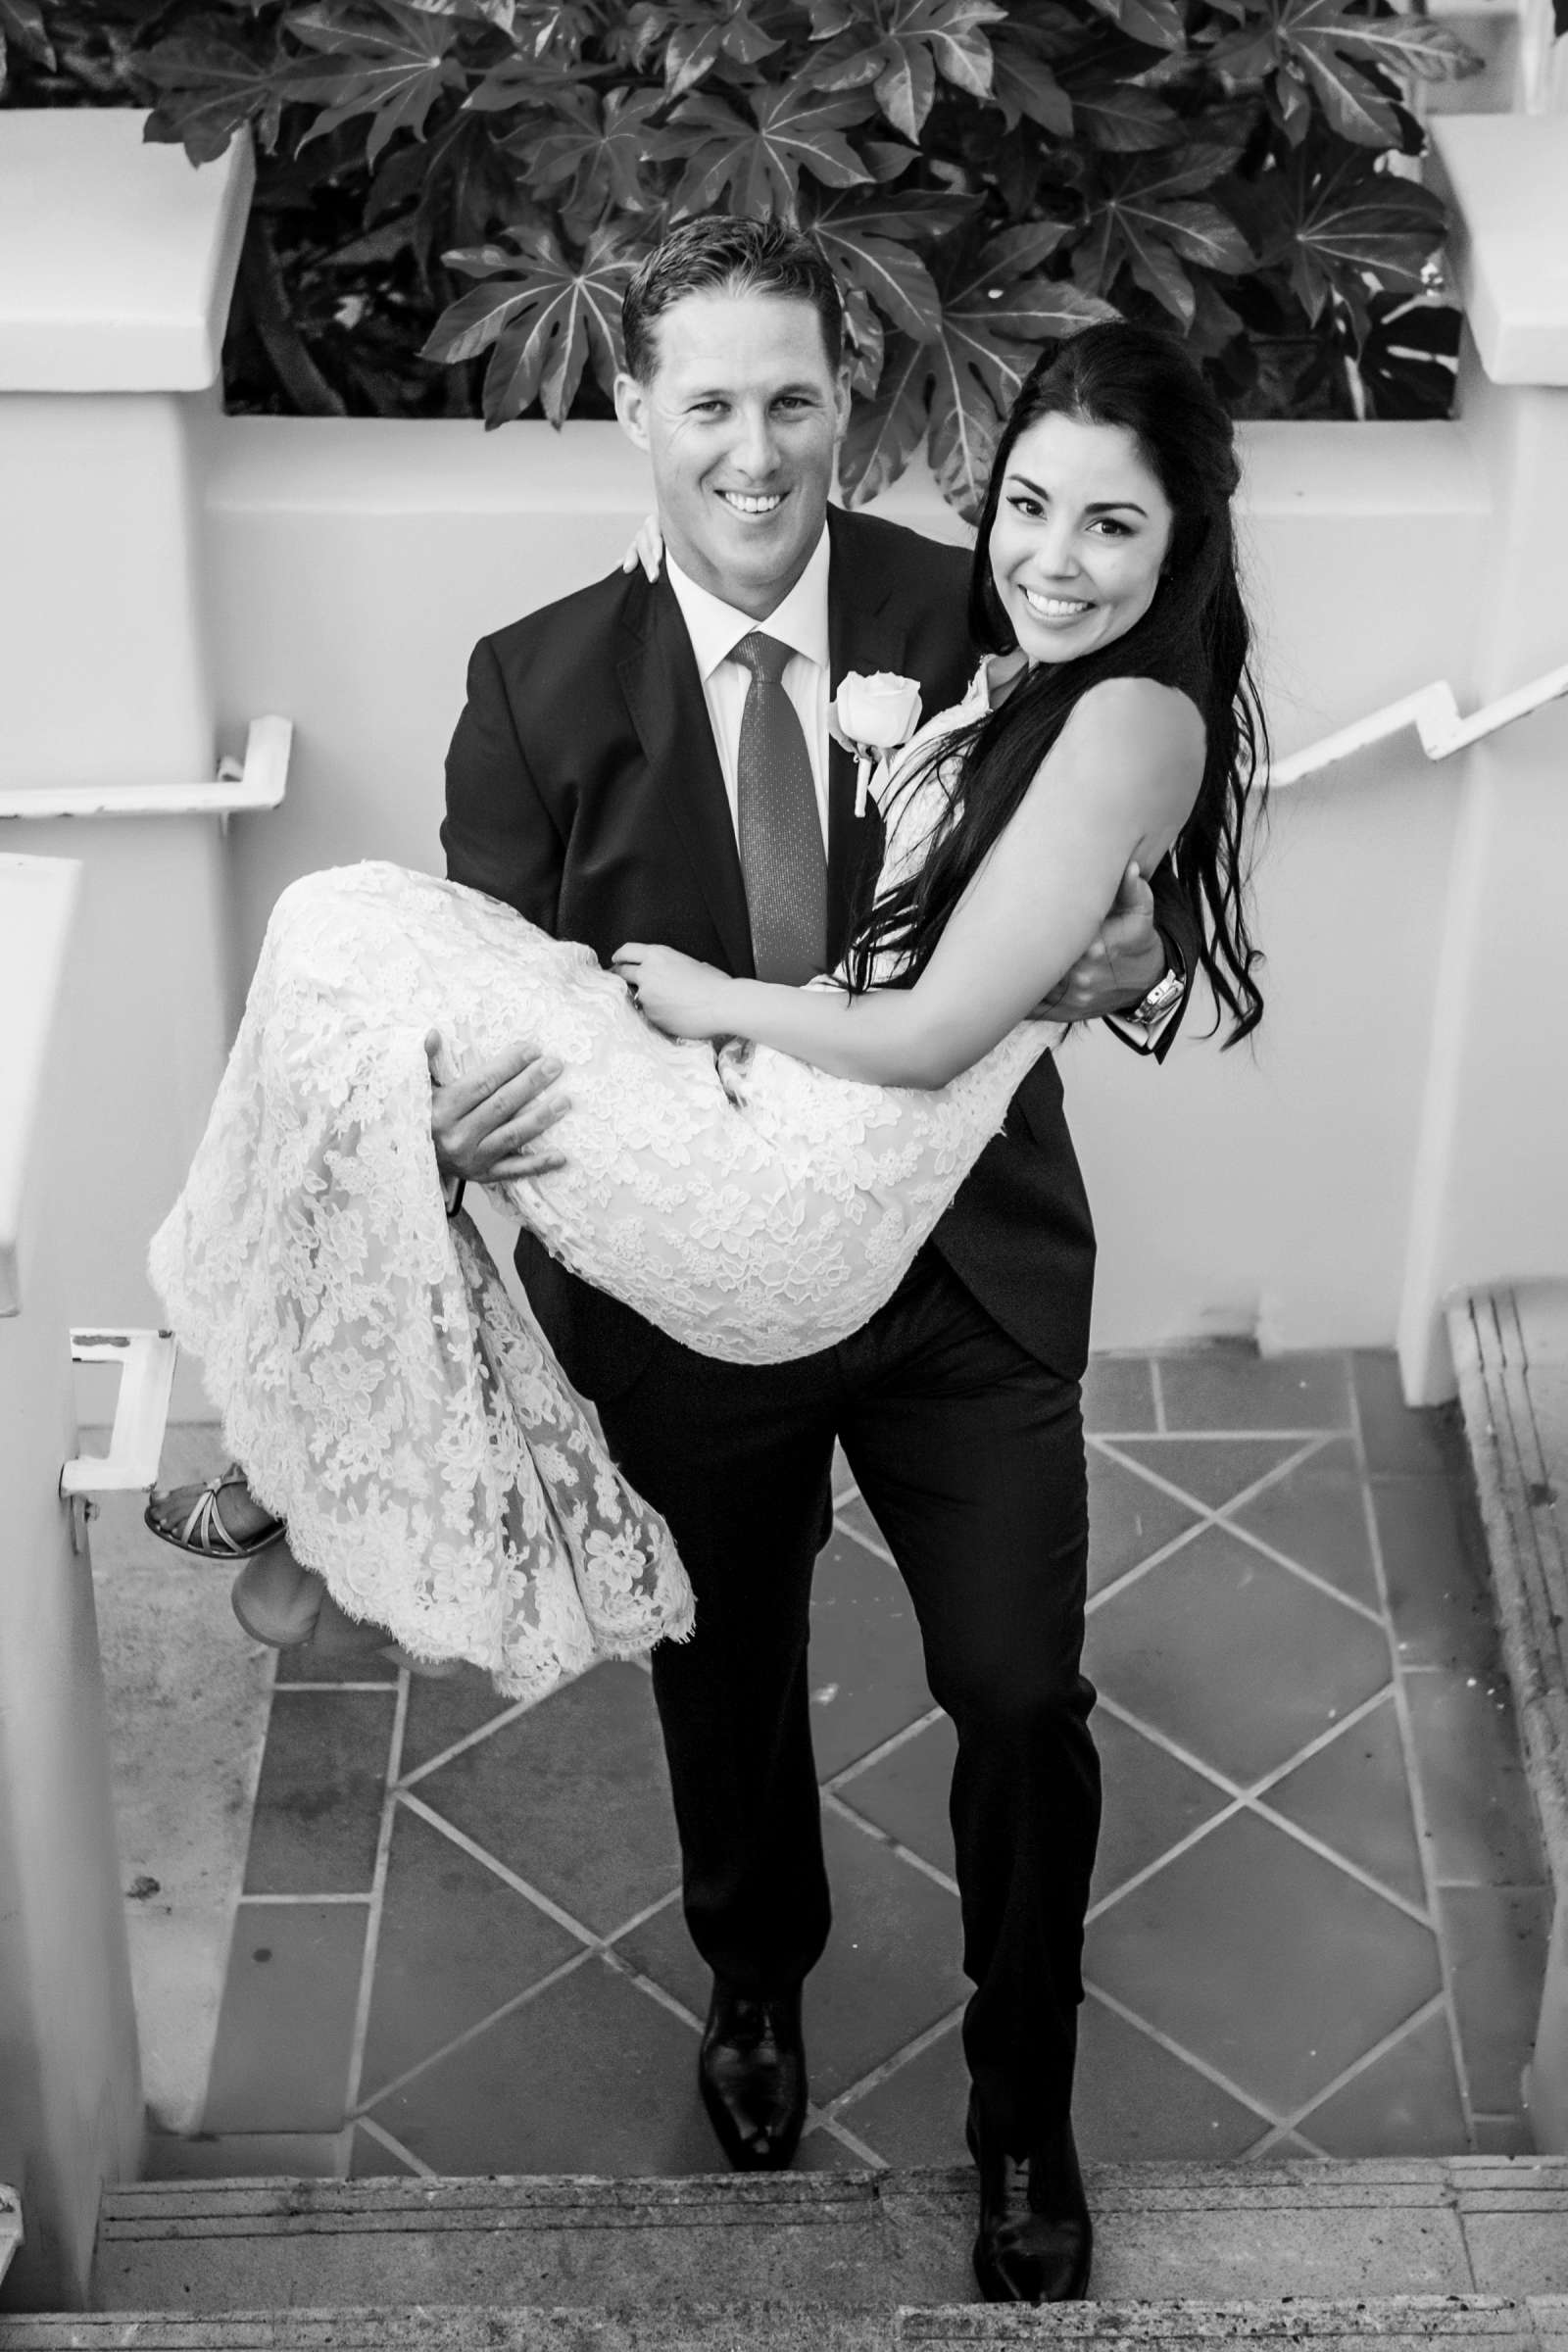 La Valencia Wedding coordinated by First Comes Love Weddings & Events, Lea and Nick Wedding Photo #9 by True Photography